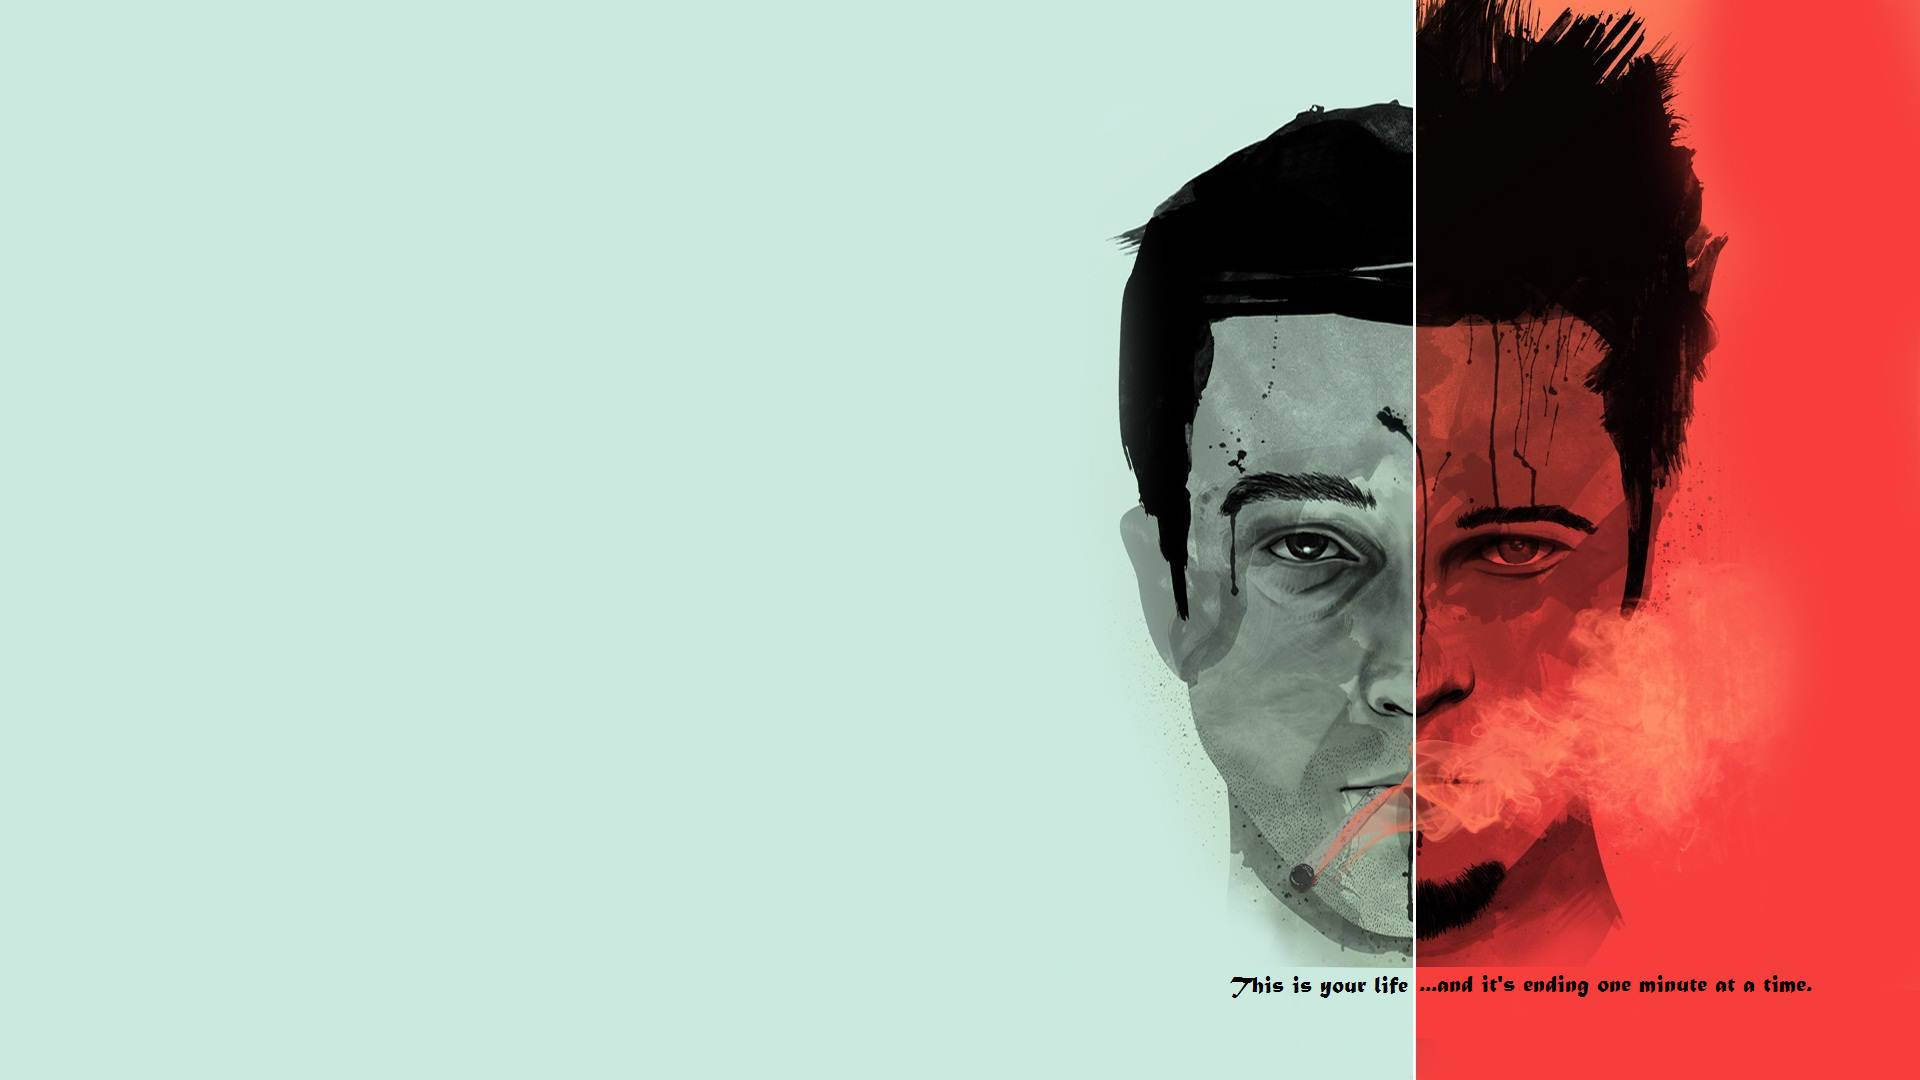 Fight club movie poster 27 x 40